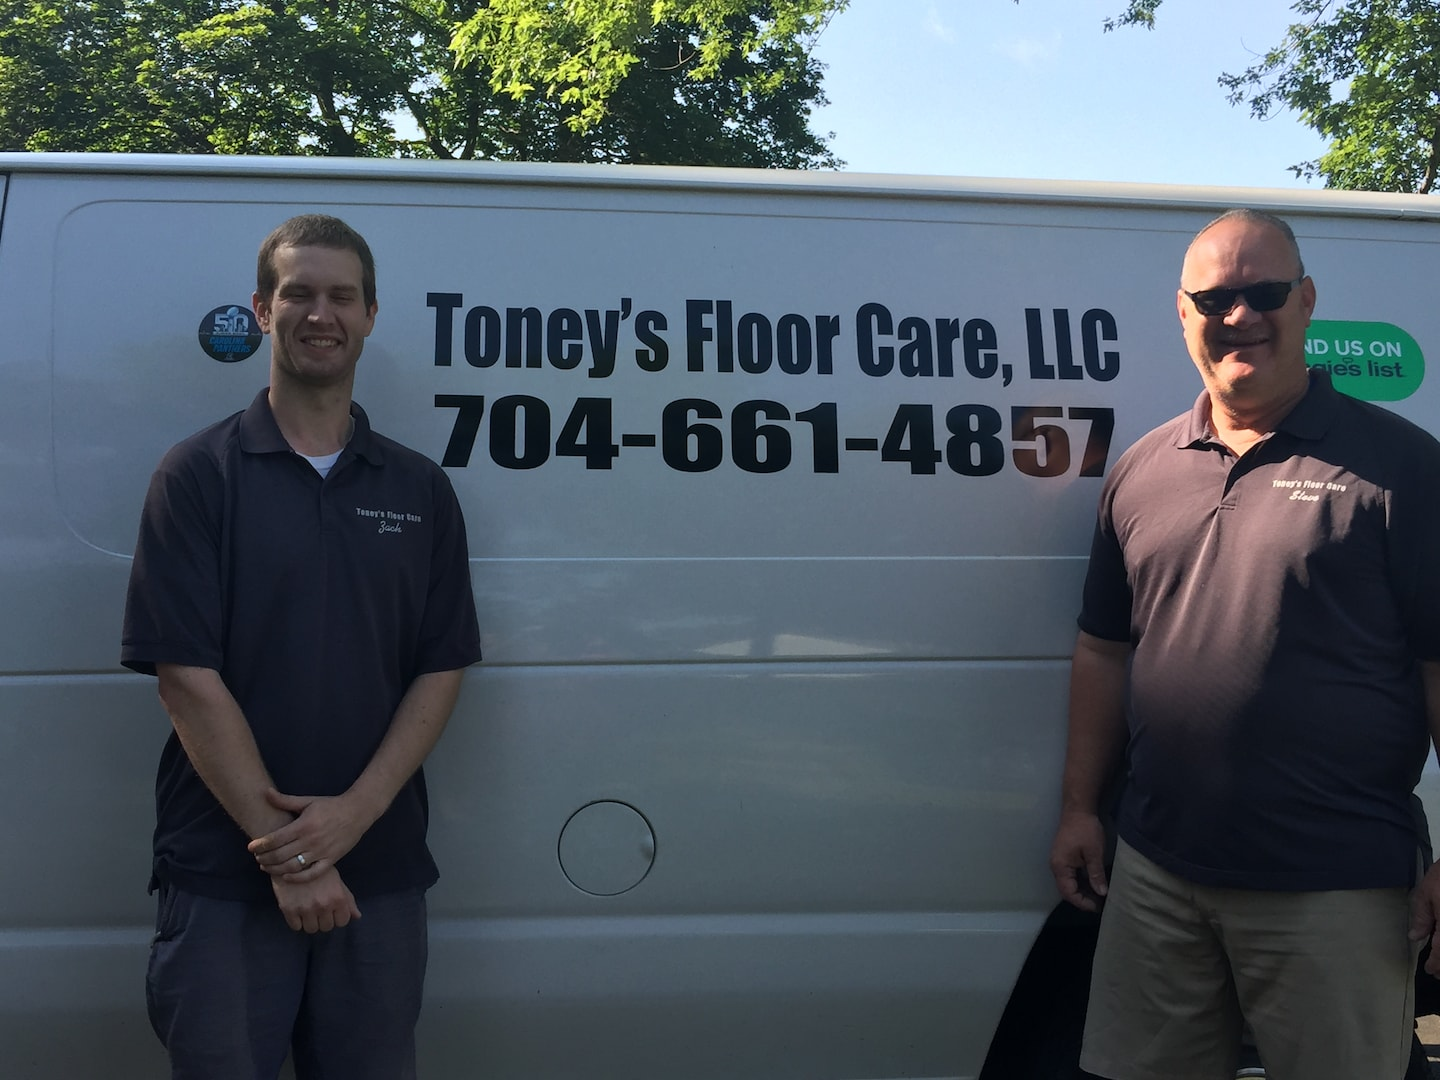 Toney's Floor Care LLC